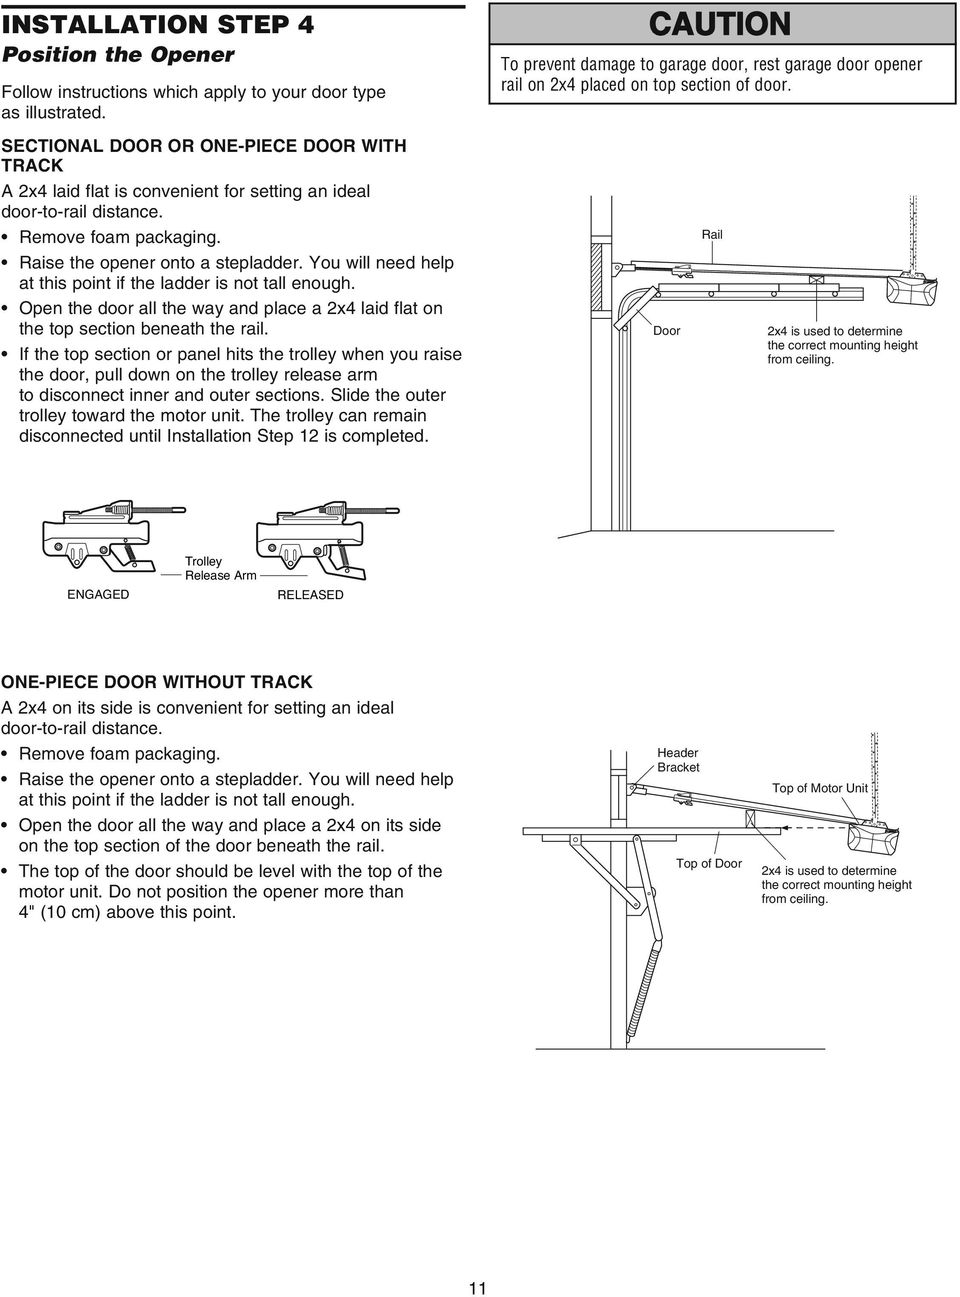 Door Opener Reinforcement Bracket On Garage Motor Diagram Model 3850pc Pdf You Will Need Help At This Point If The Ladder Is Not Tall Enough Open